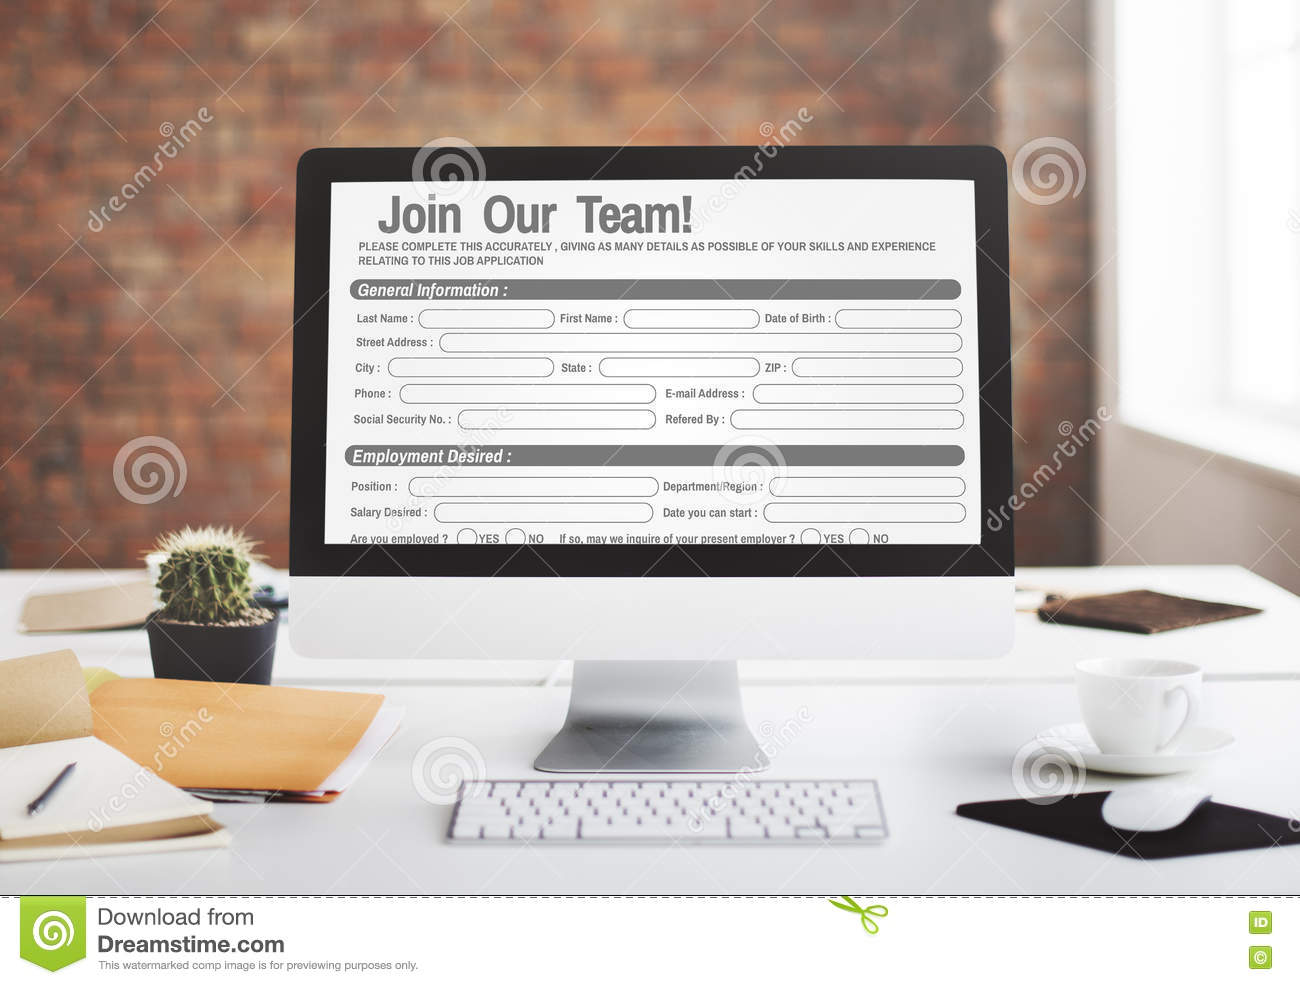 Online Web Job Application Form Concept Stock Image - Image of ...